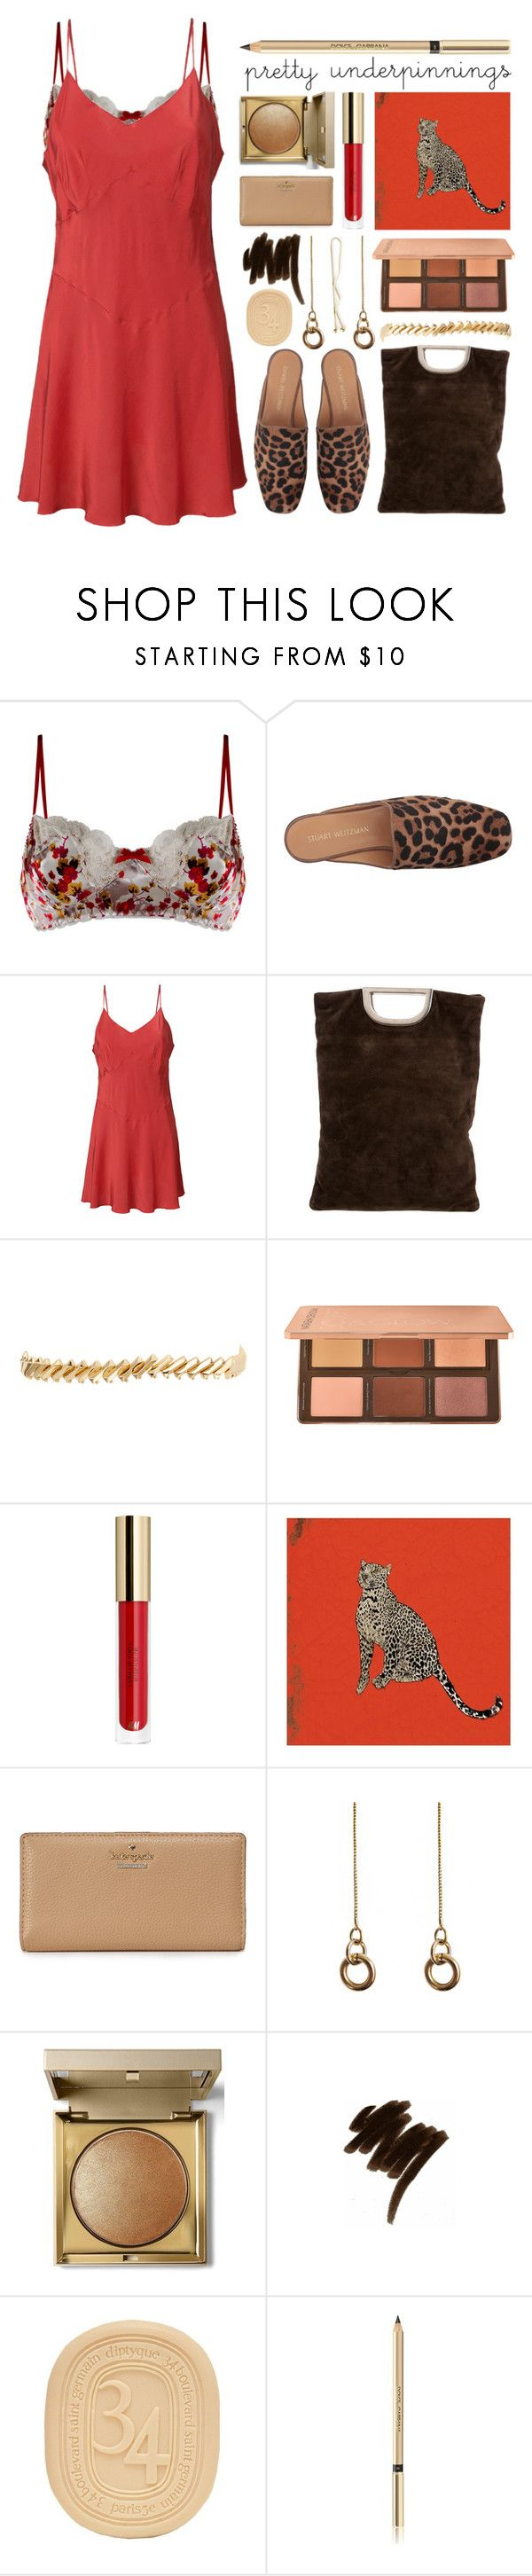 """""""pretty underneath"""" by foundlostme ❤ liked on Polyvore featuring Ayten Gasson, Stuart Weitzman, Lemaire, Eddie Borgo, Jessica Russell Flint, Kate Spade, Laura Lombardi, Stila, Lancôme and Diptyque"""